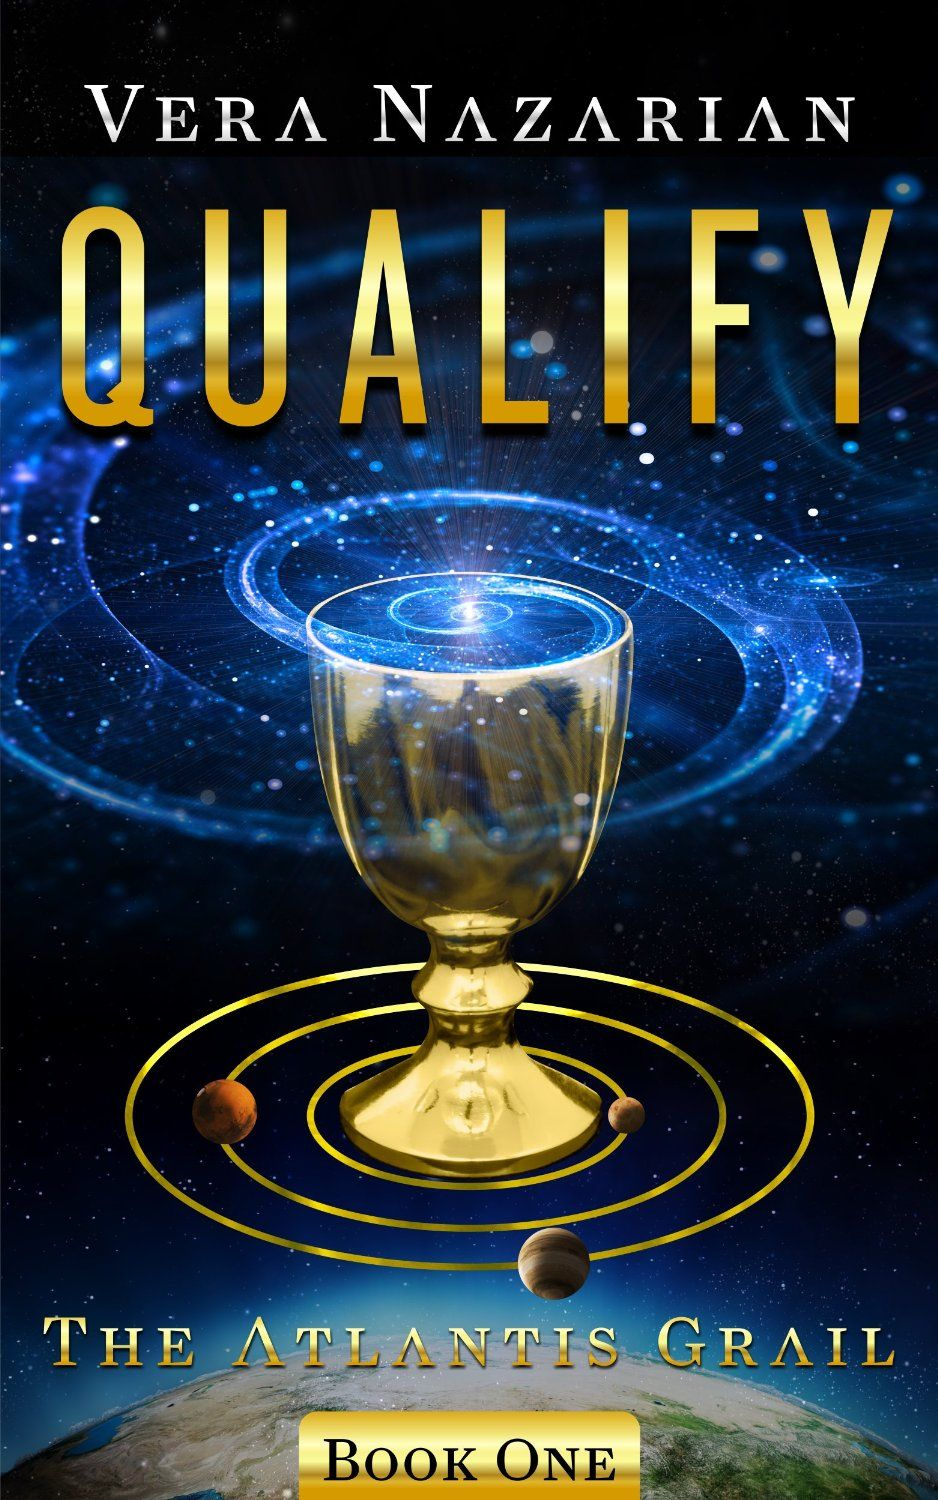 Qualify (the Atlantis Grail Book 1) By Vera Nazarian Get Your Free Copy Now